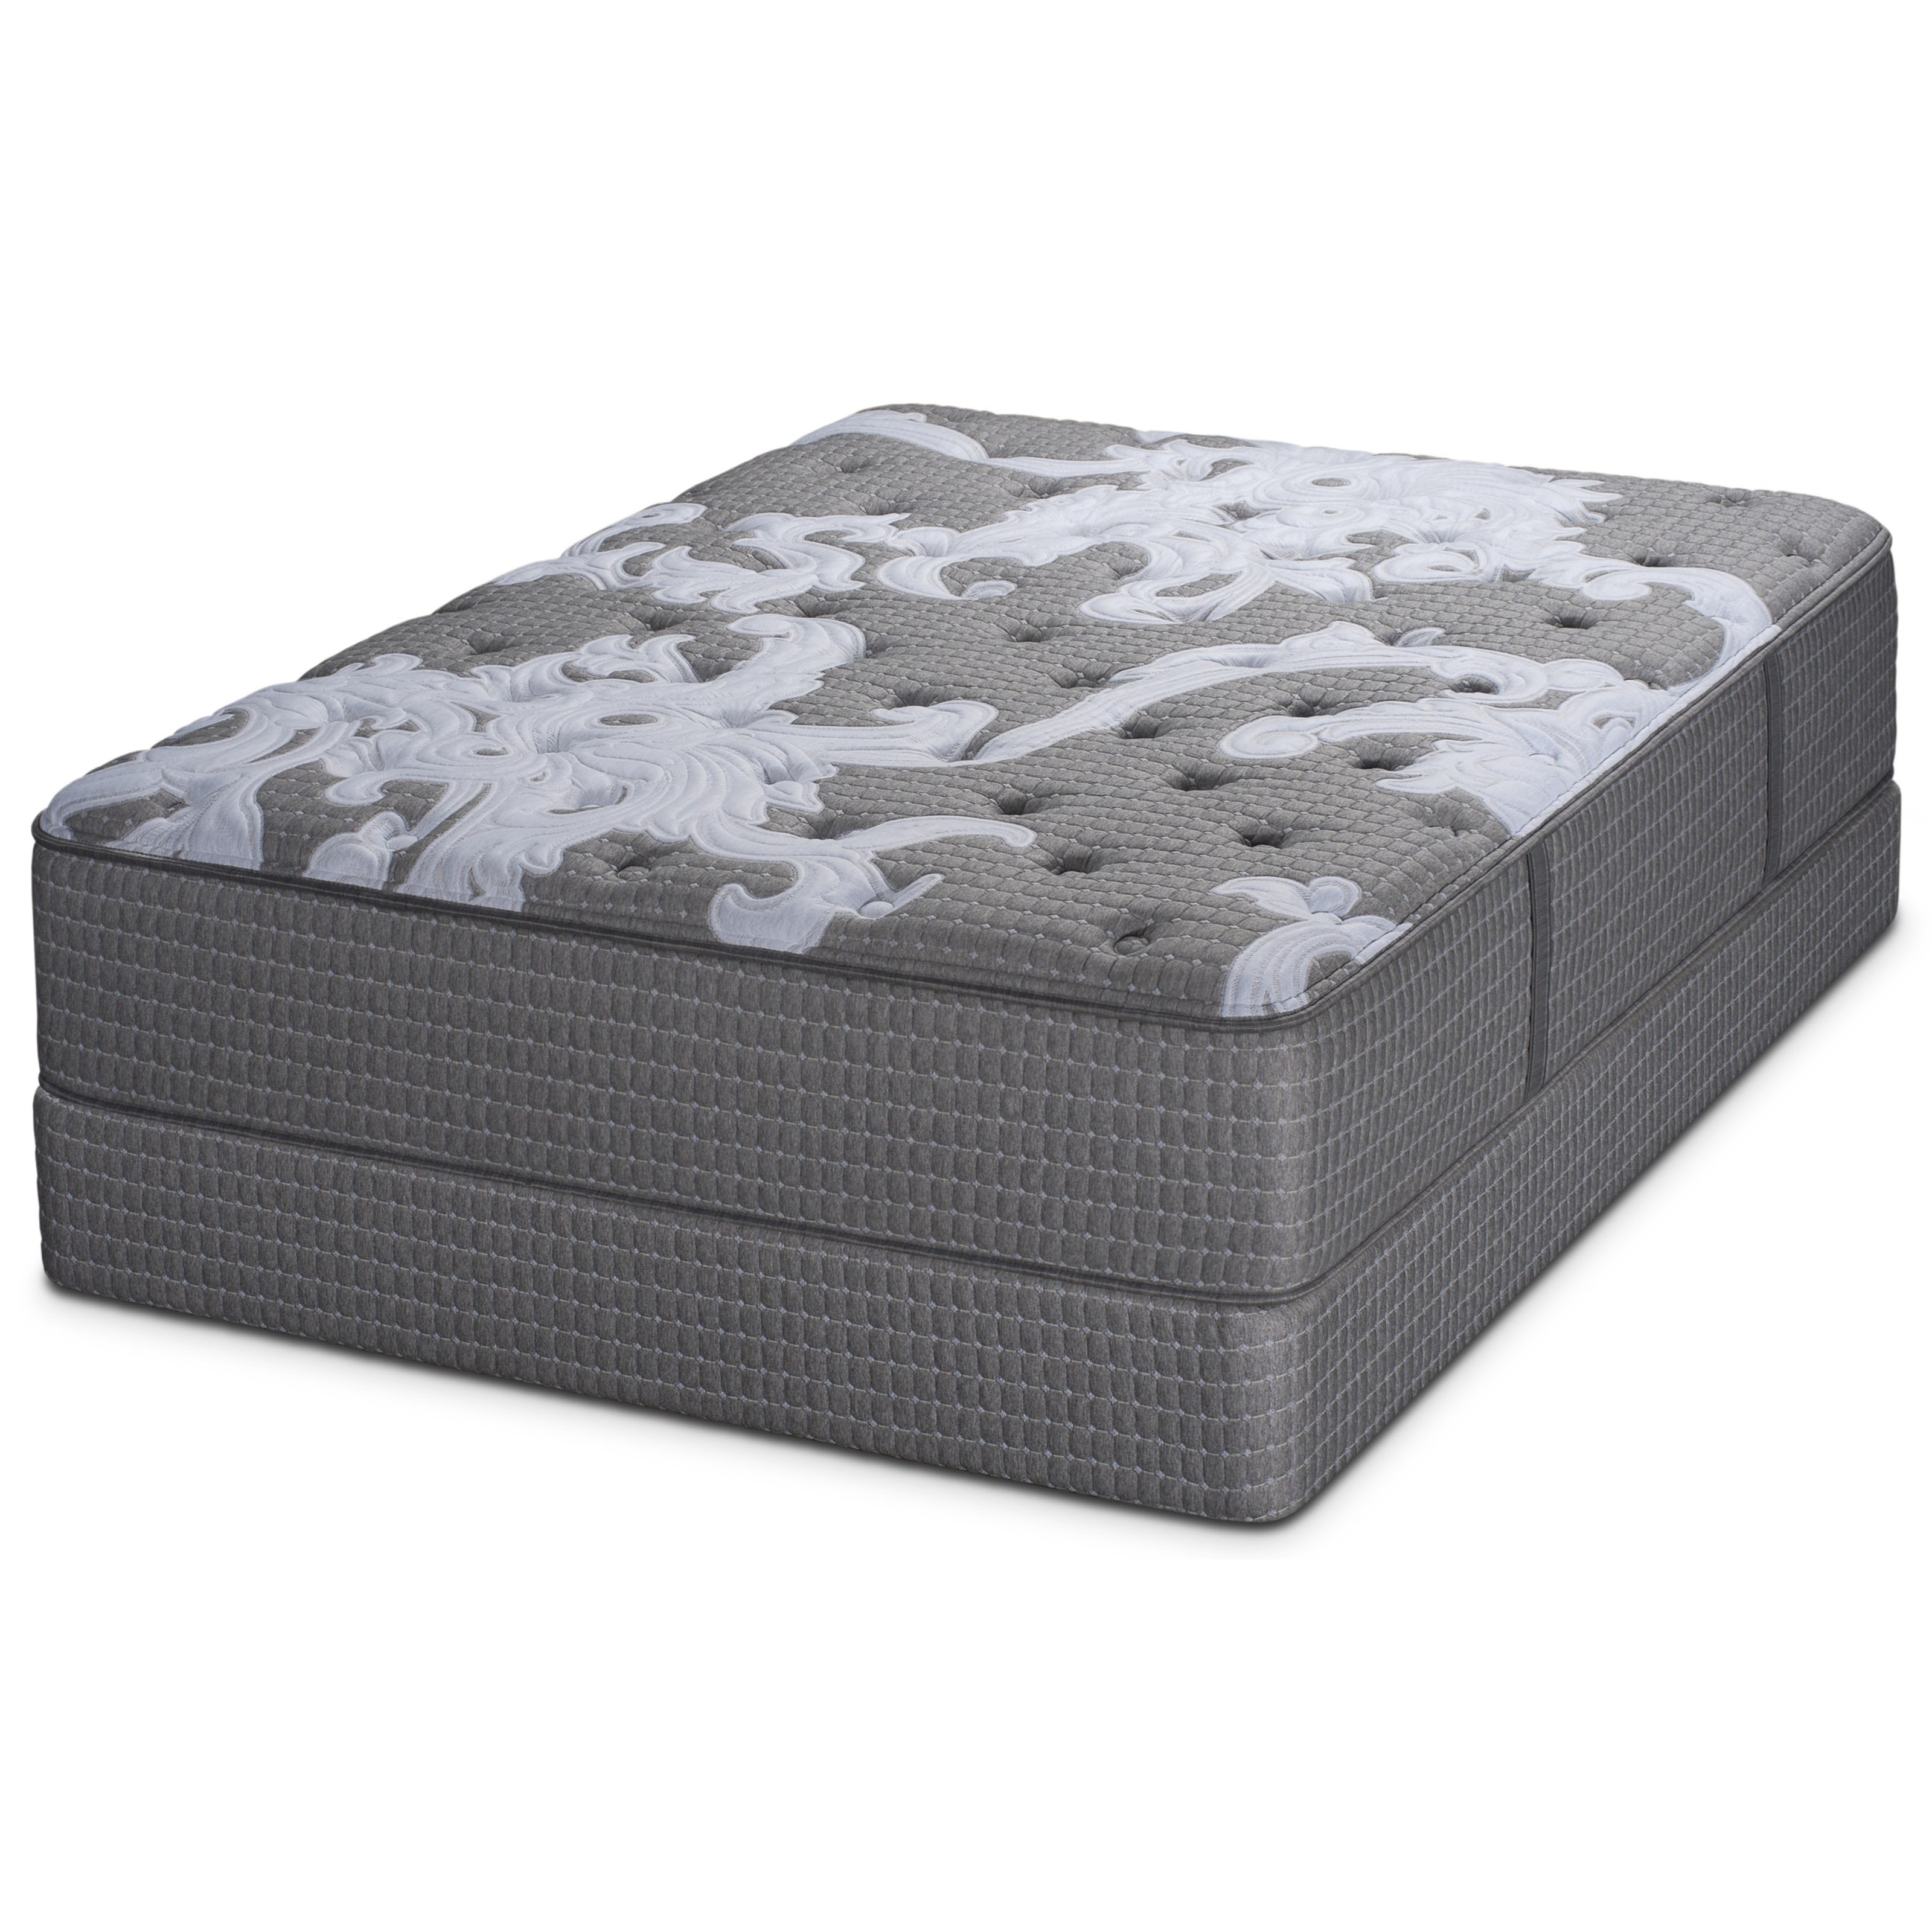 Threshold Full Pocketed Coil Mattress Set by Restonic at H.L. Stephens